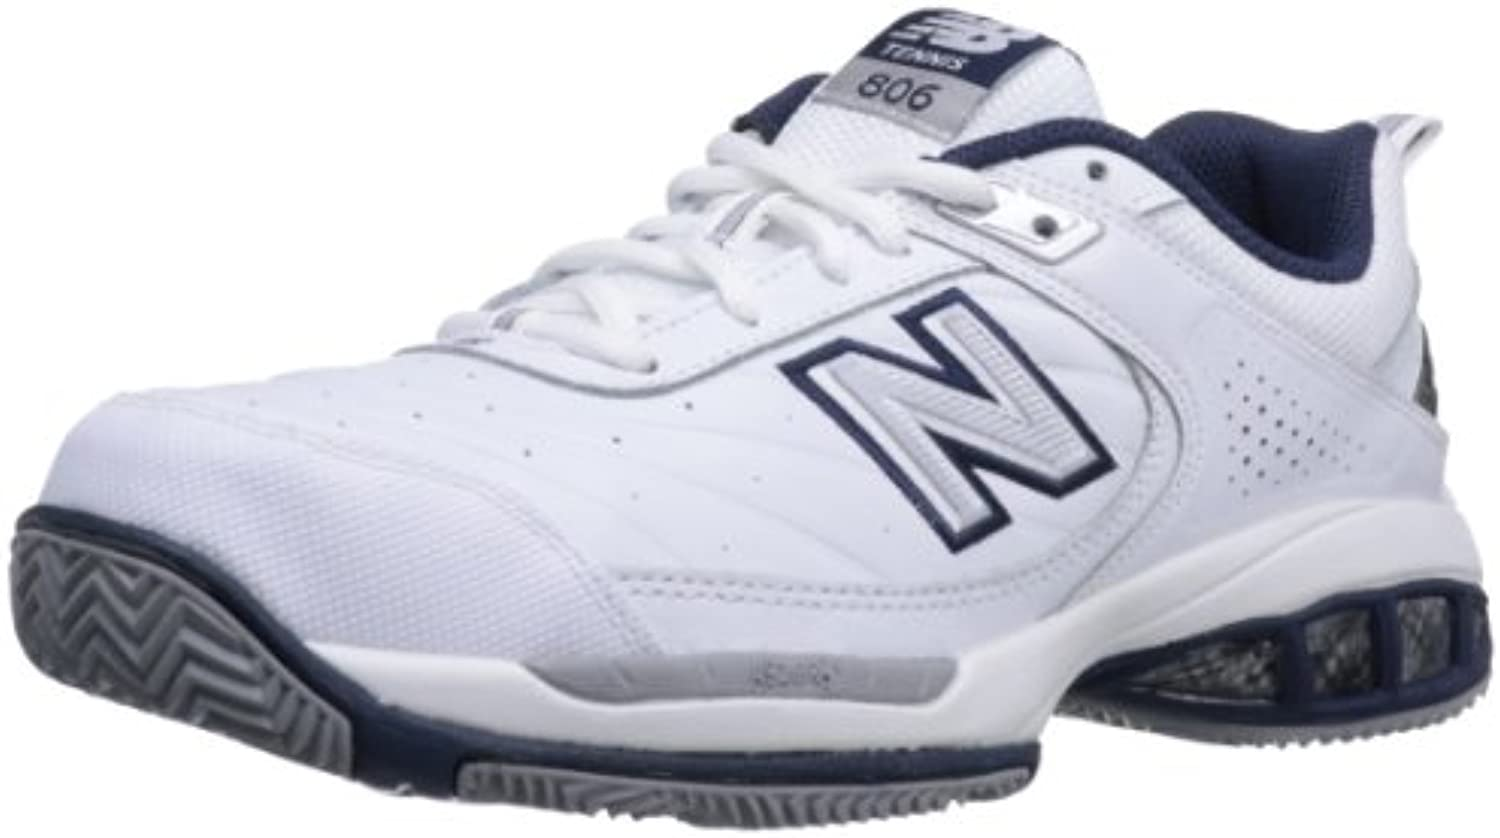 New Balance Men's mc806 Tennis Shoe, White, 13 2E US